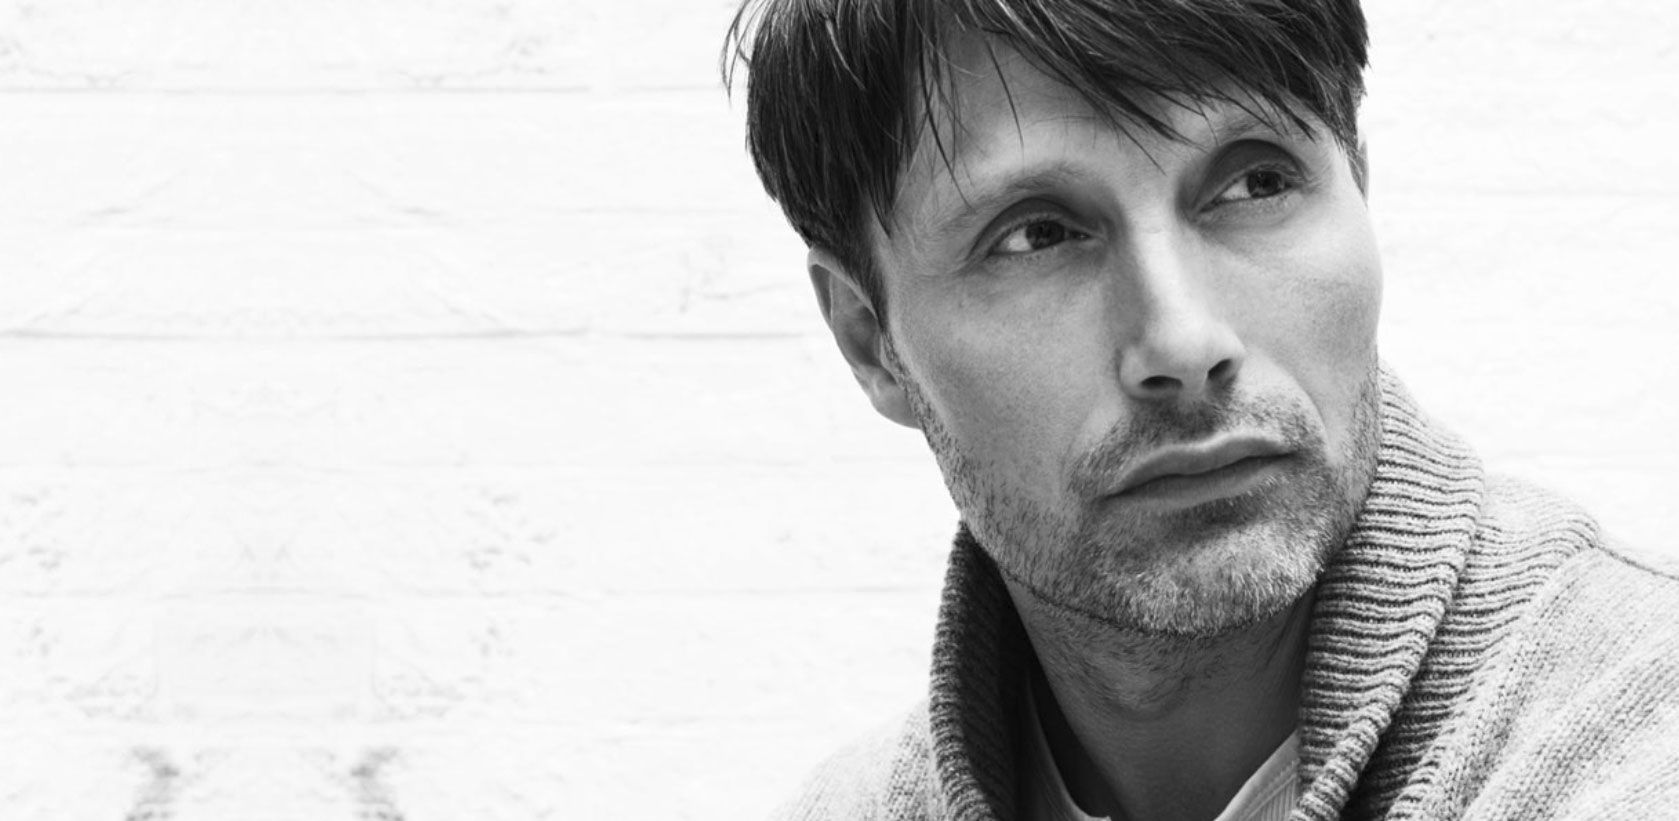 Mads Mikkelsen Joins 'Thor 2' As Villain; Jon Favreau And